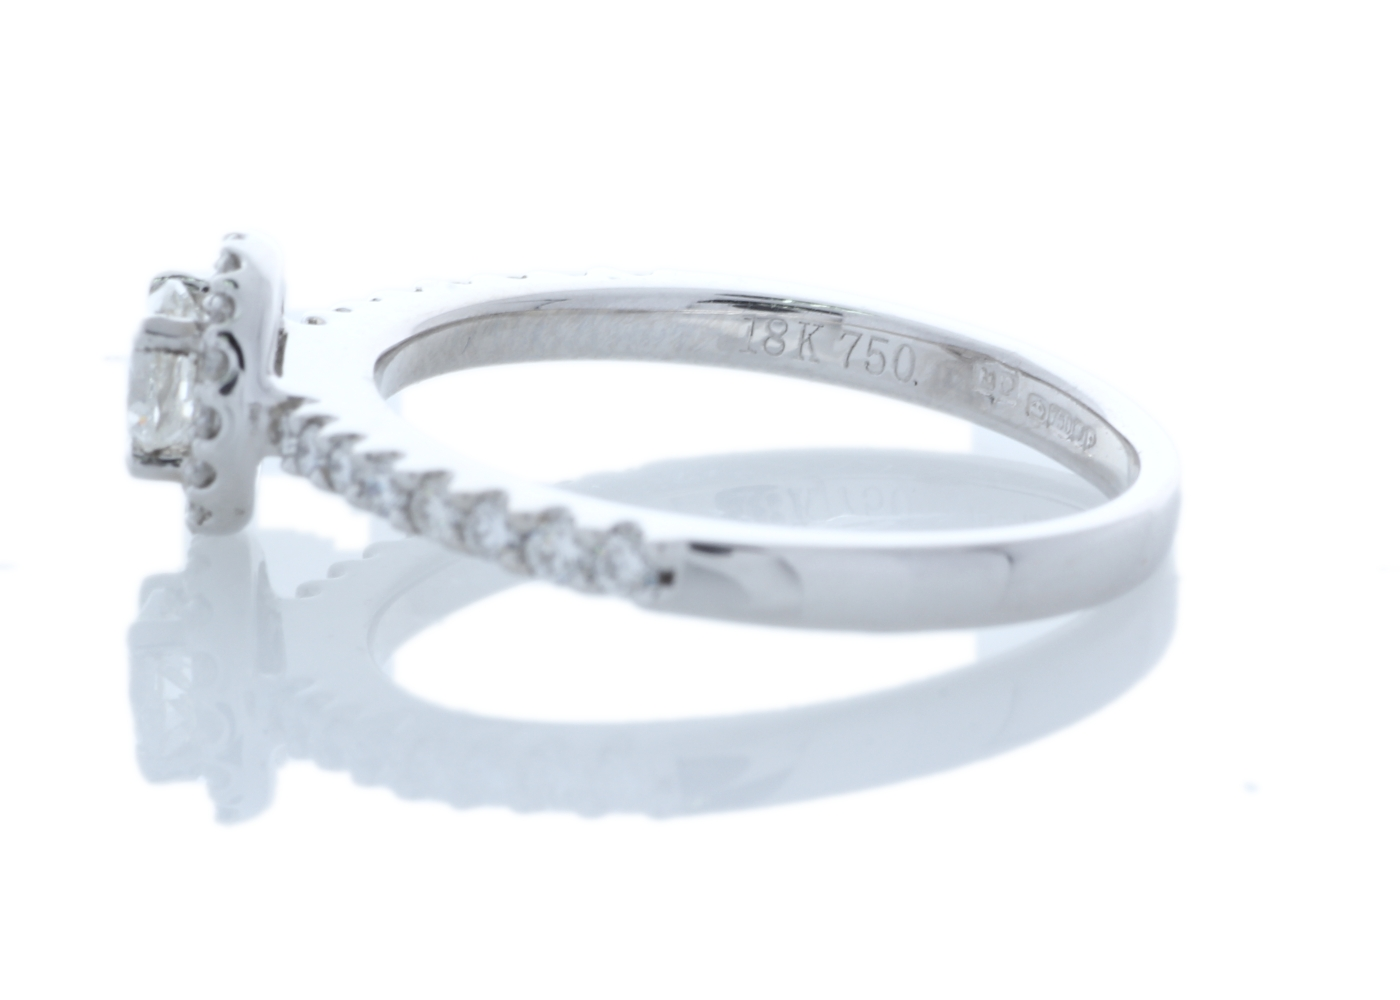 Lot 29 - 18ct White Gold Halo Set Ring 0.63 Carats